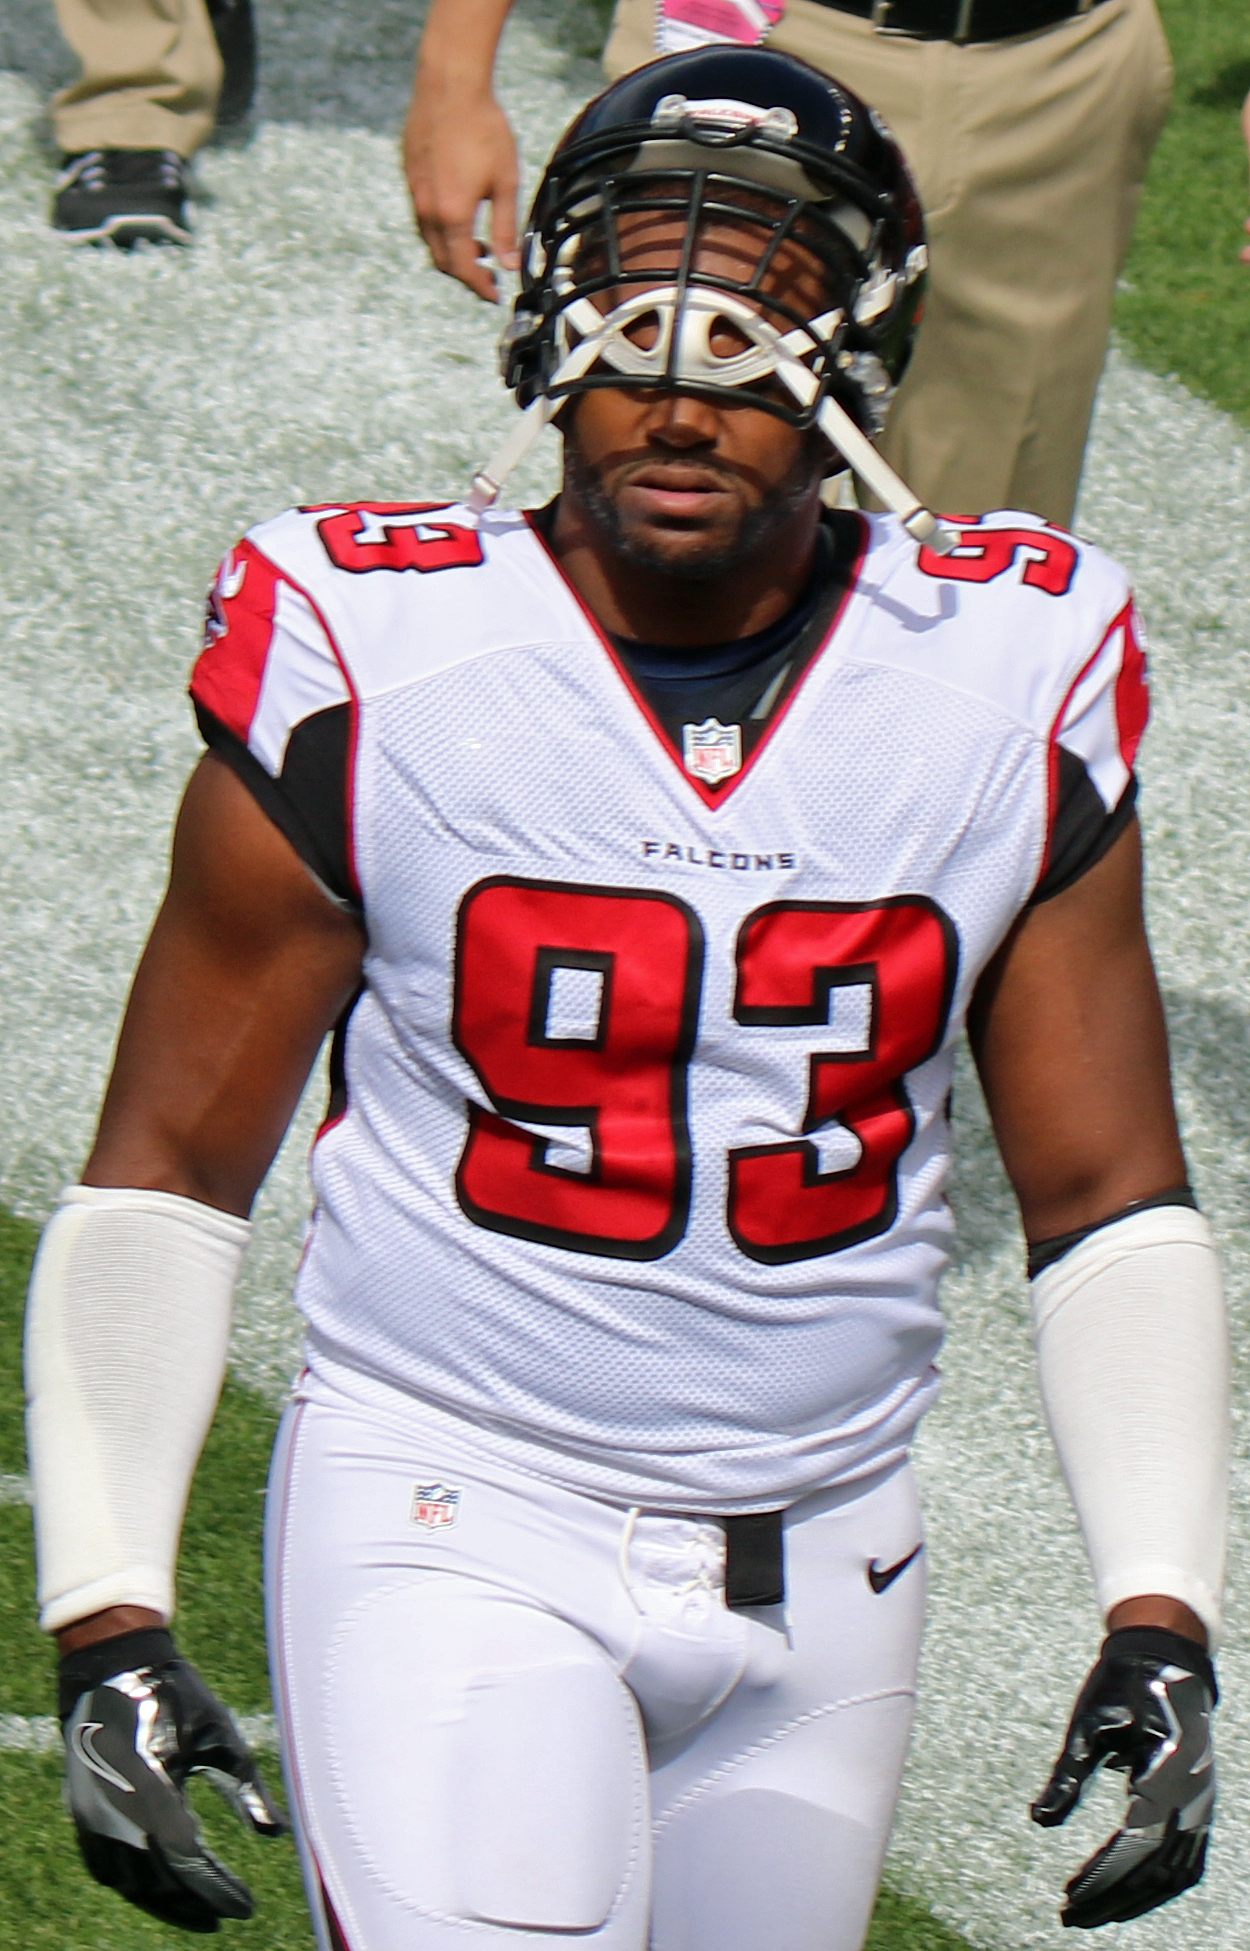 39b5c1db Dwight Freeney - Wikipedia